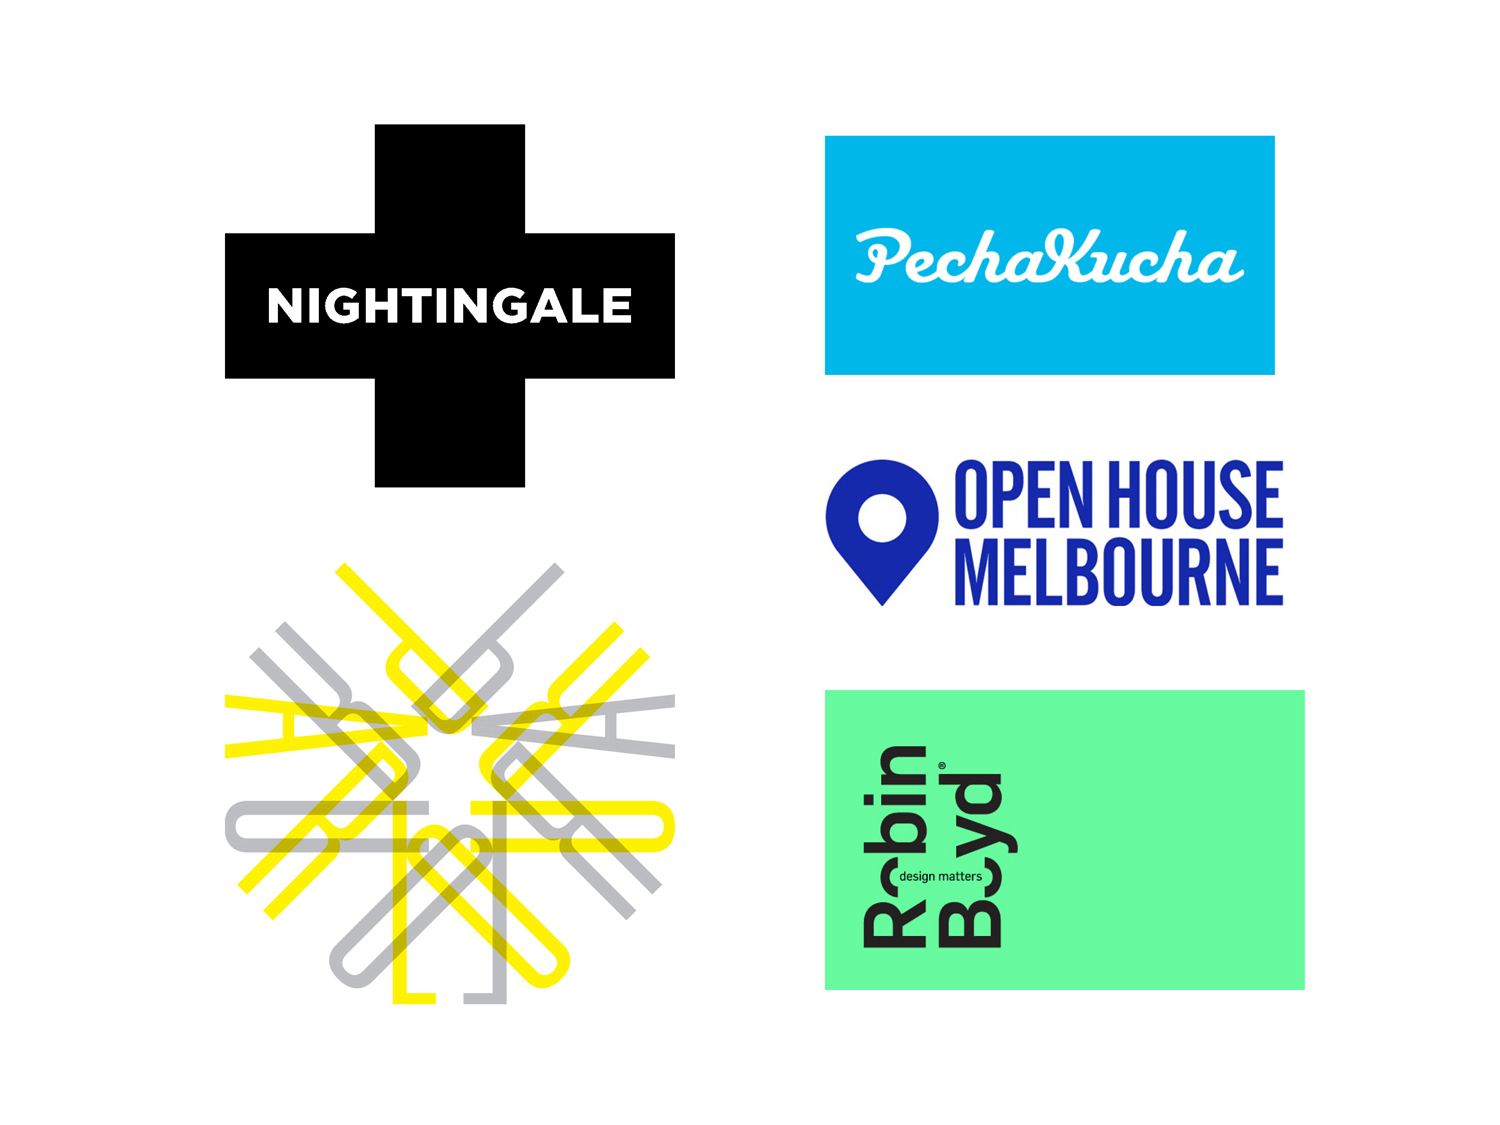 Advocacy; Logos; Graphic design; Nightingale Housing; Parlour; Pecha Kucha; Open House Melbourne; Robin Boyd Foundation